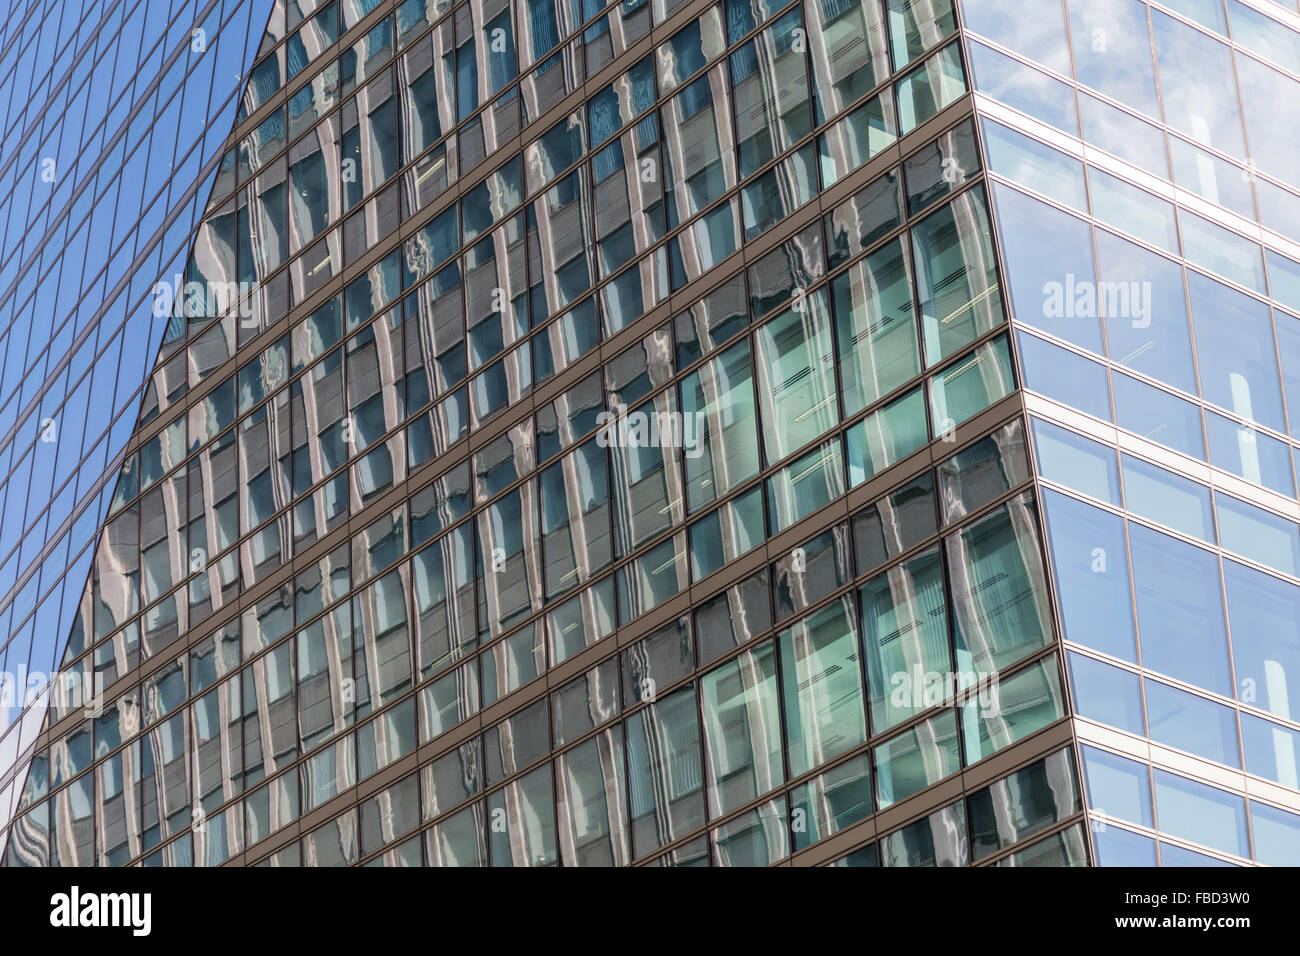 Building facades, London, United Kingdom - Stock Image